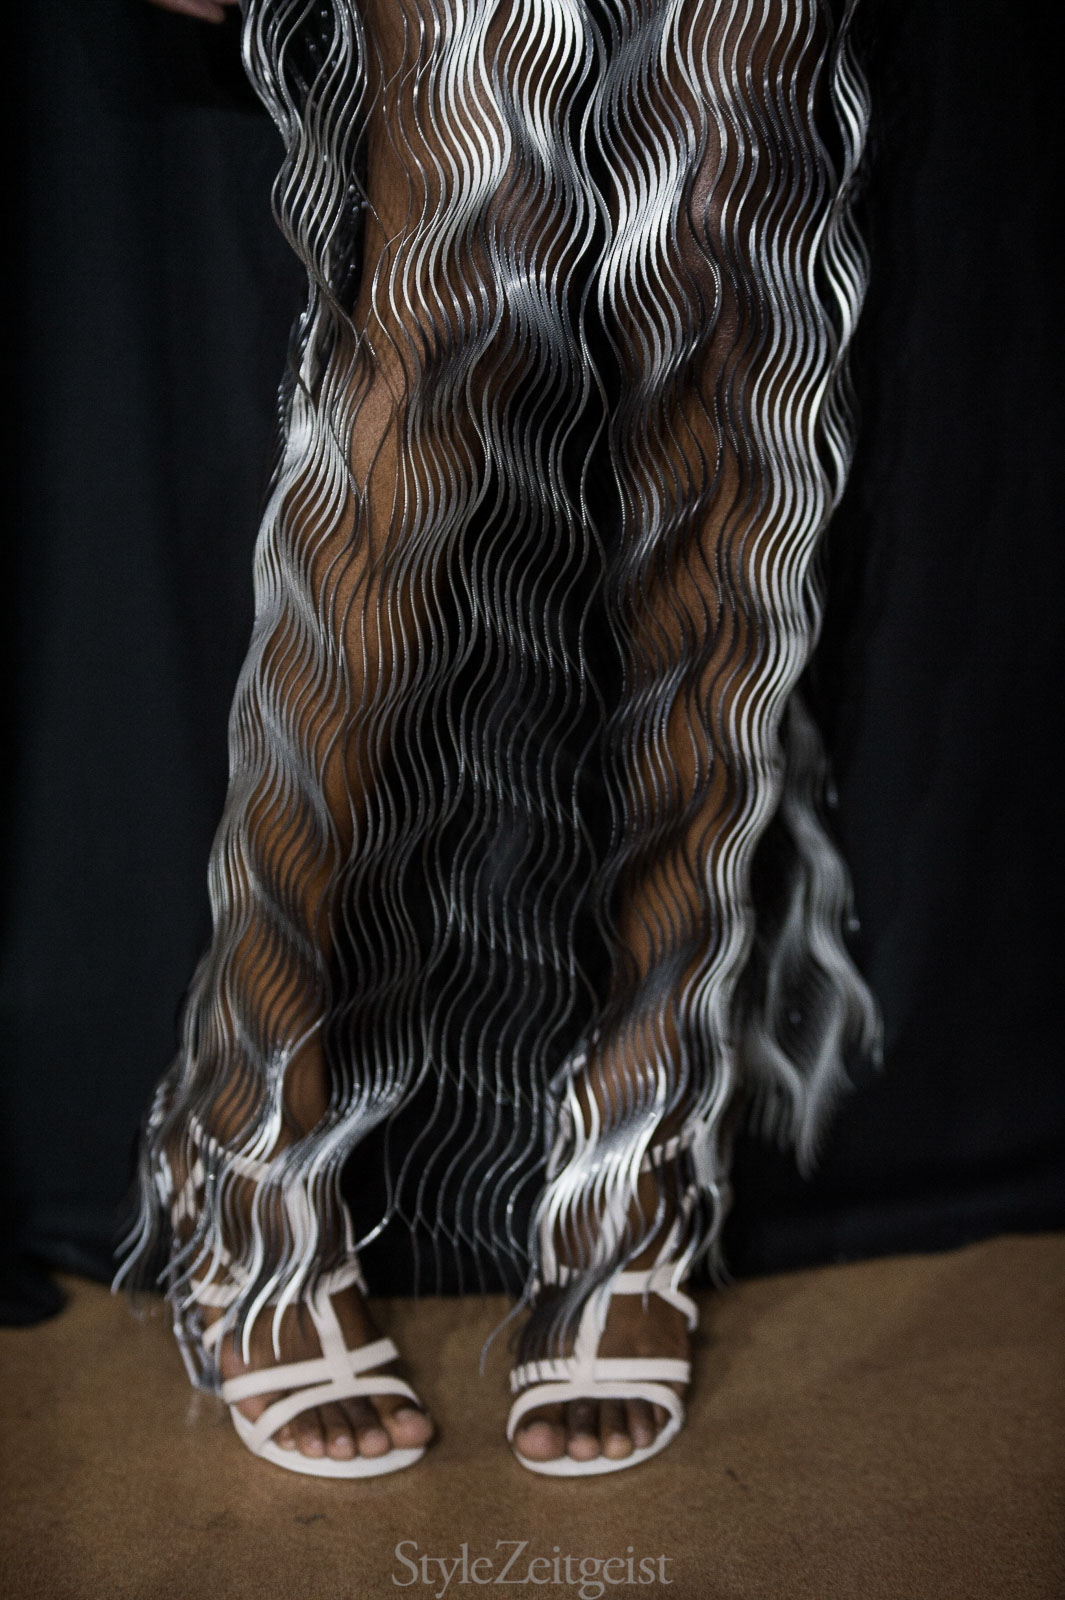 Iris van Herpen F/W17 Couture - Backstage - fashion - StyleZeitgeist, PFW, Paris, Iris Van Herpen, FW17, Fashion, Fall Winter, Backstage, 2017